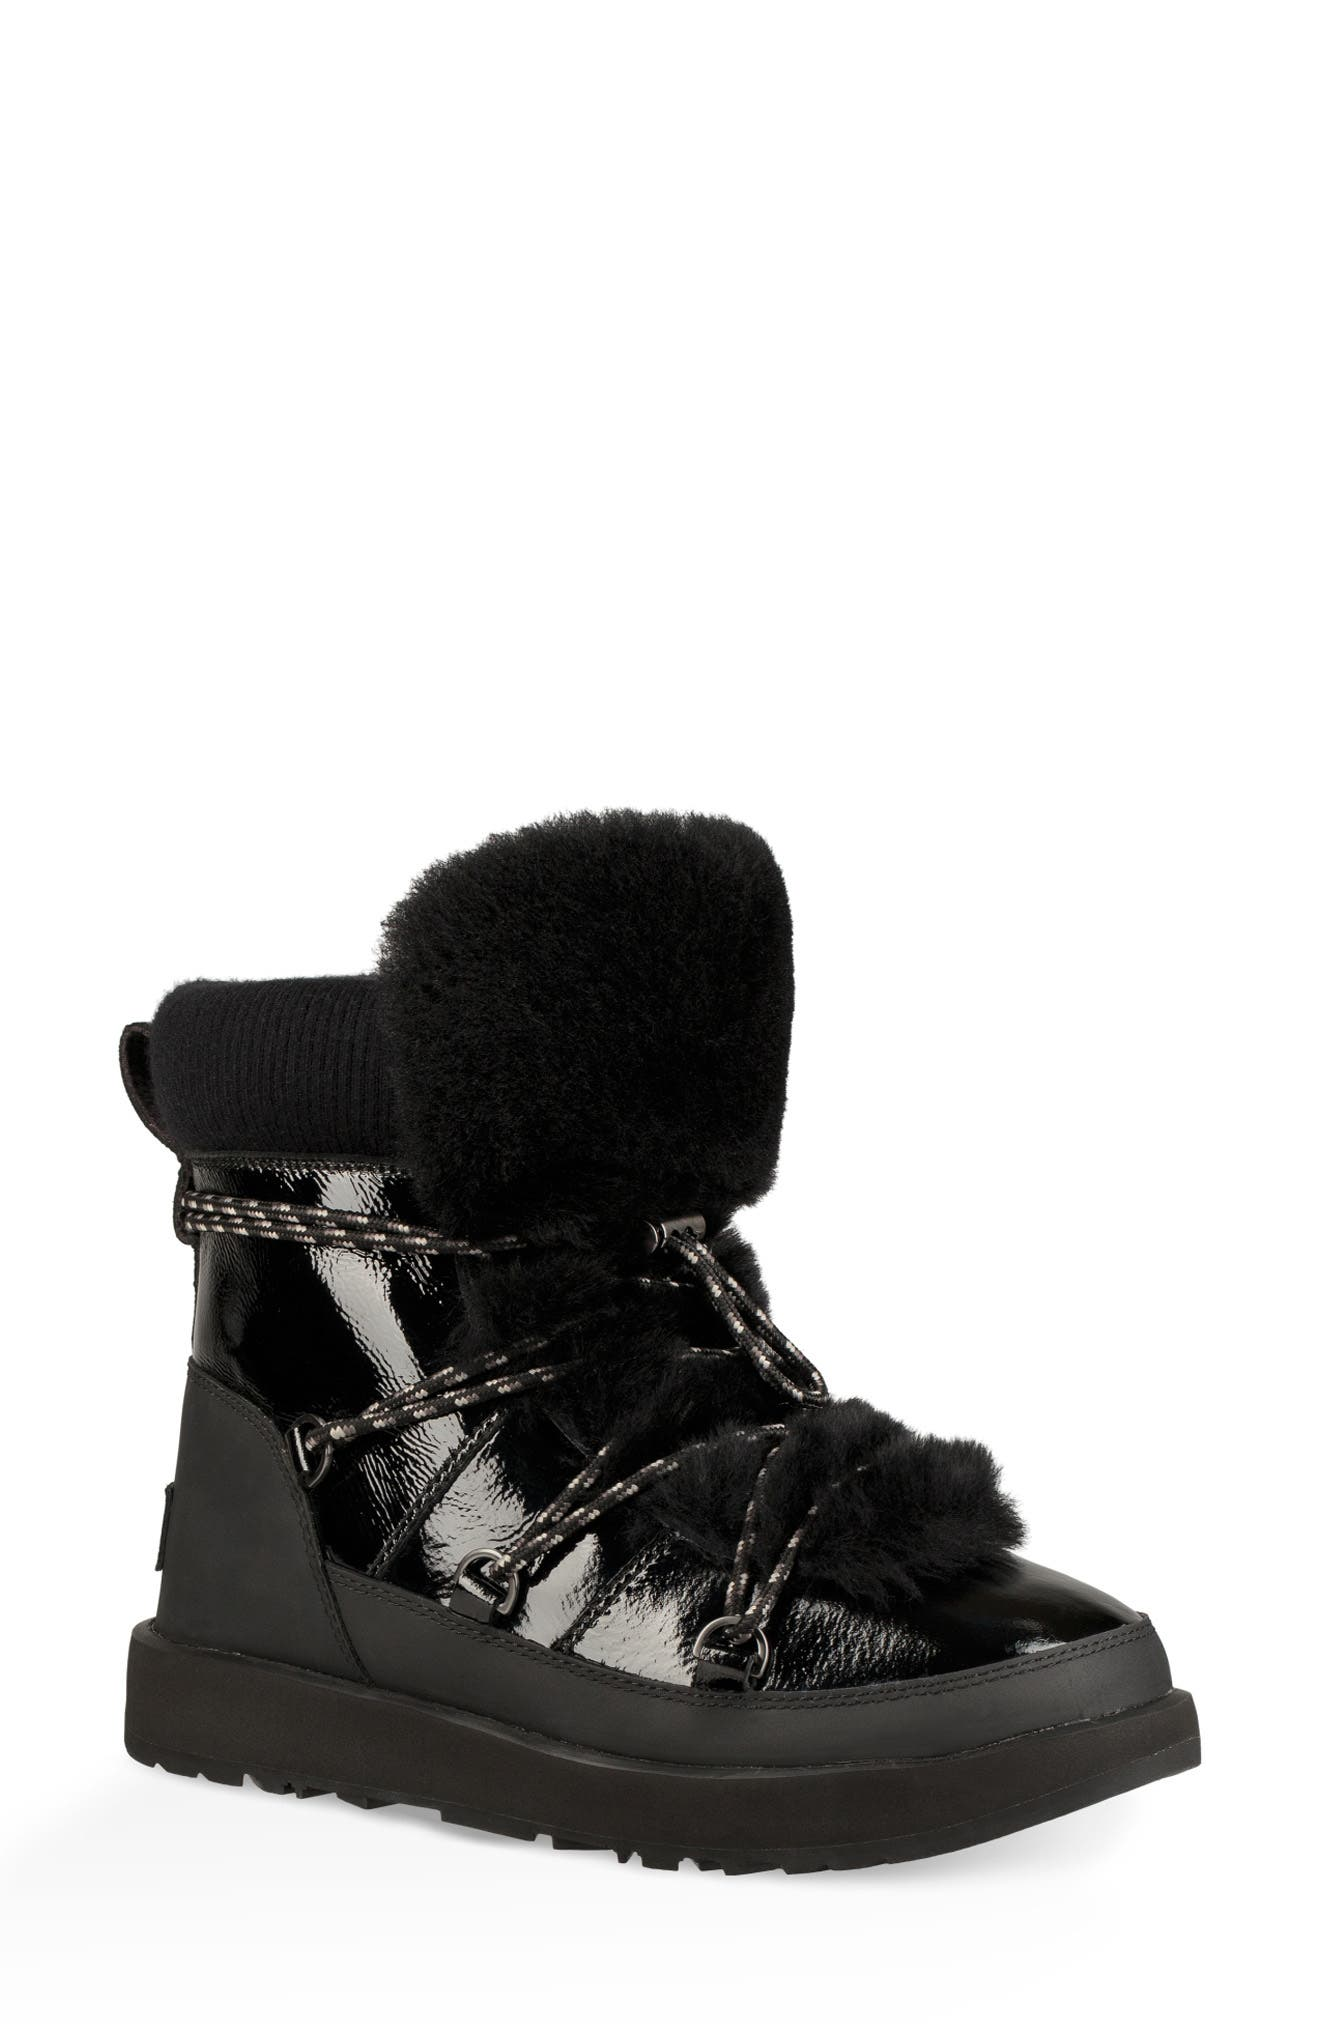 Highland Waterproof Patent/Shearling Lace-Up Boots in Black Leather